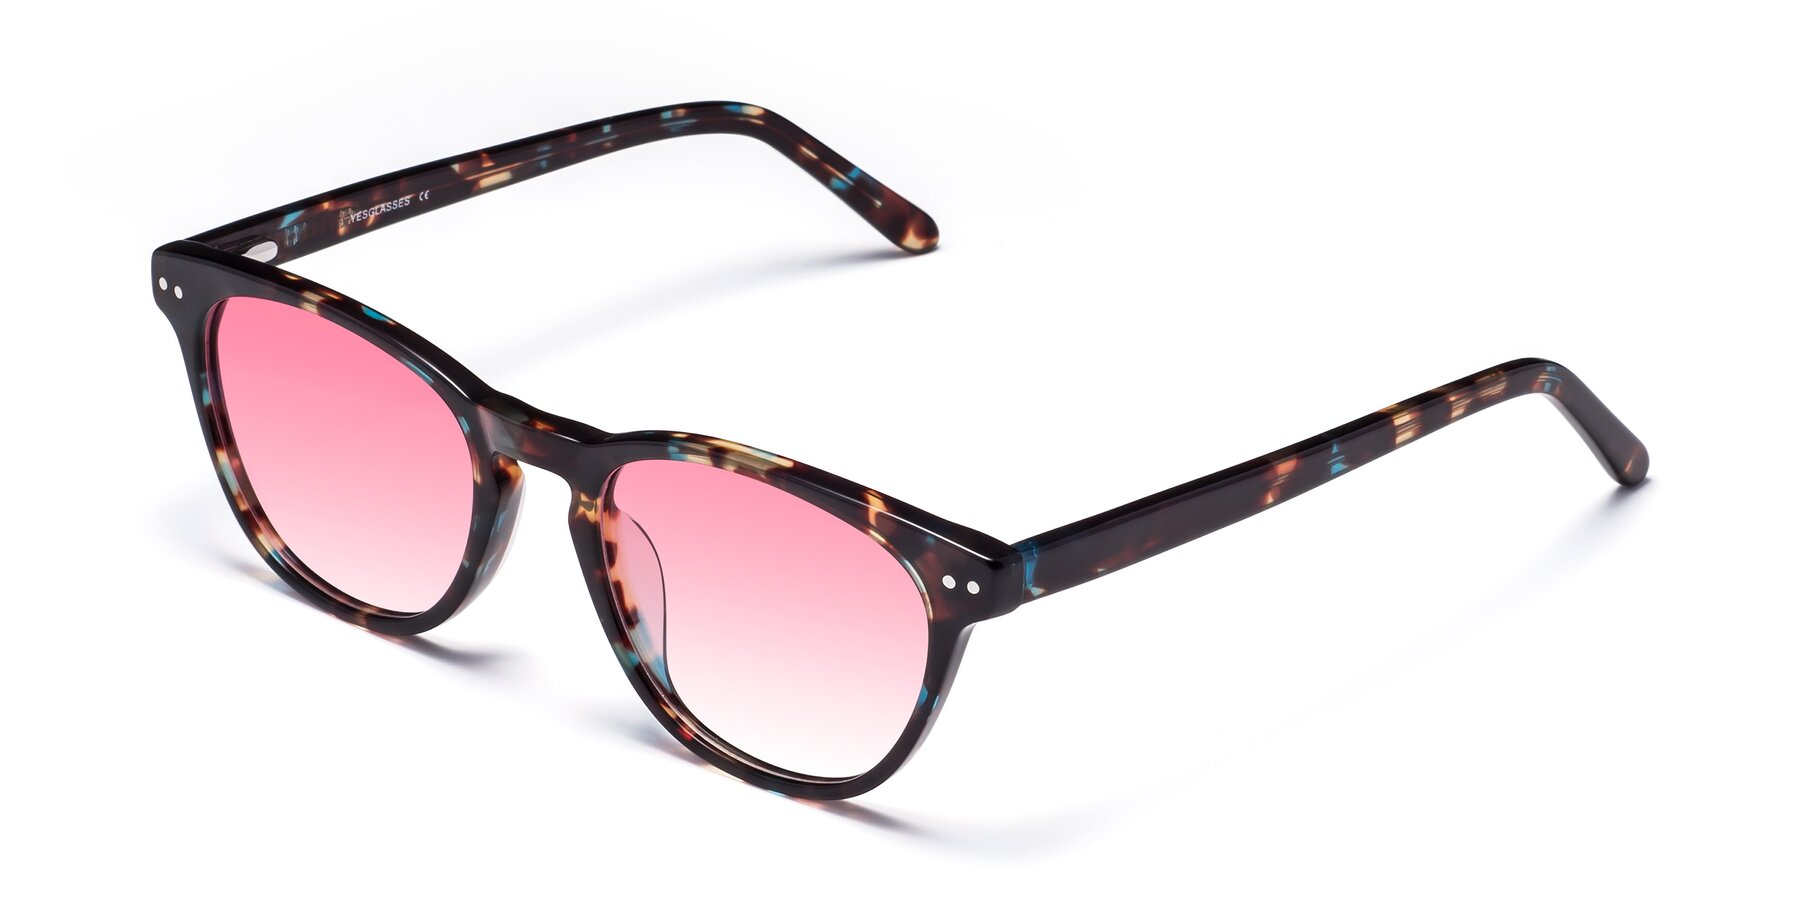 Angle of Blaze in Tortoise-Blue with Pink Gradient Lenses